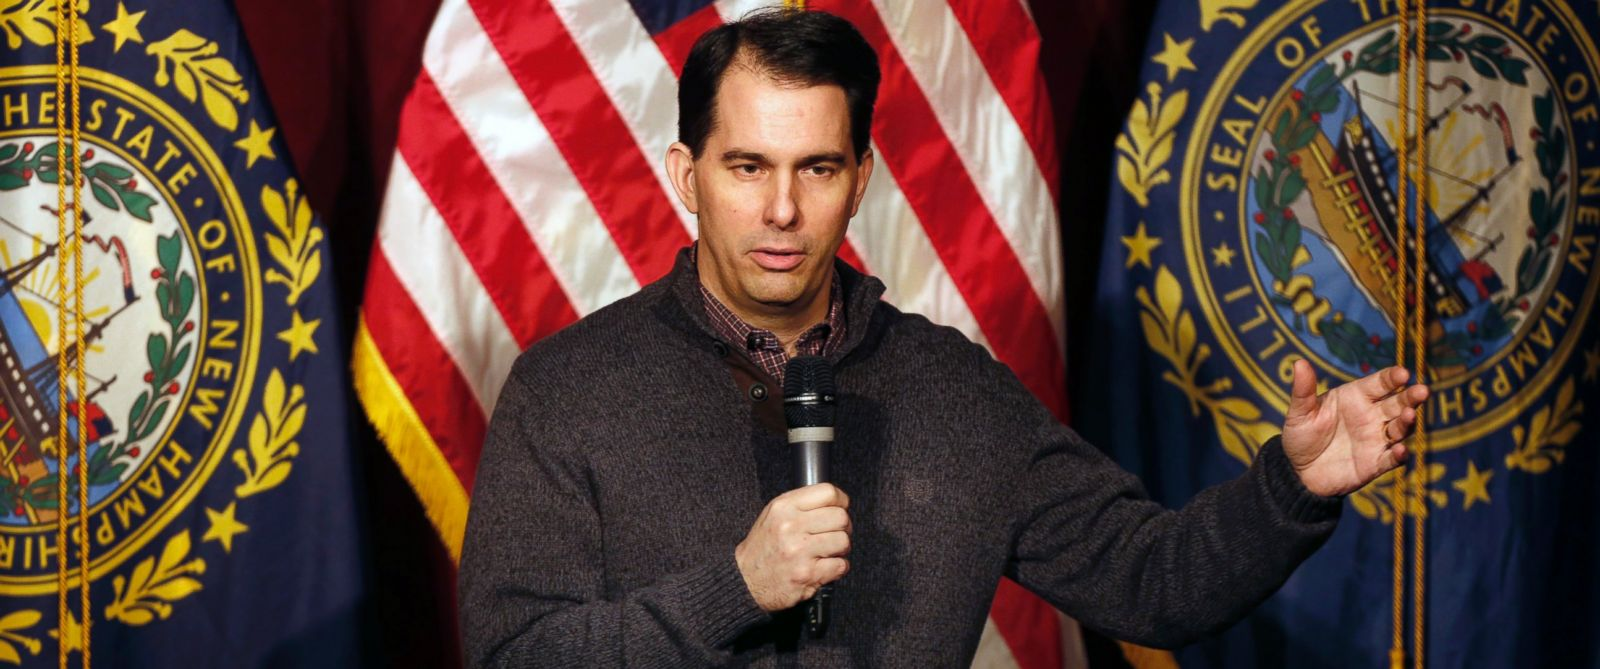 PHOTO: Wisconsin Gov. Scott Walker speaks at a training workshop for the New Hampshire state Republican Party in the auditorium at Concord High School, Saturday, March 14, 2015, in Concord, N.H.